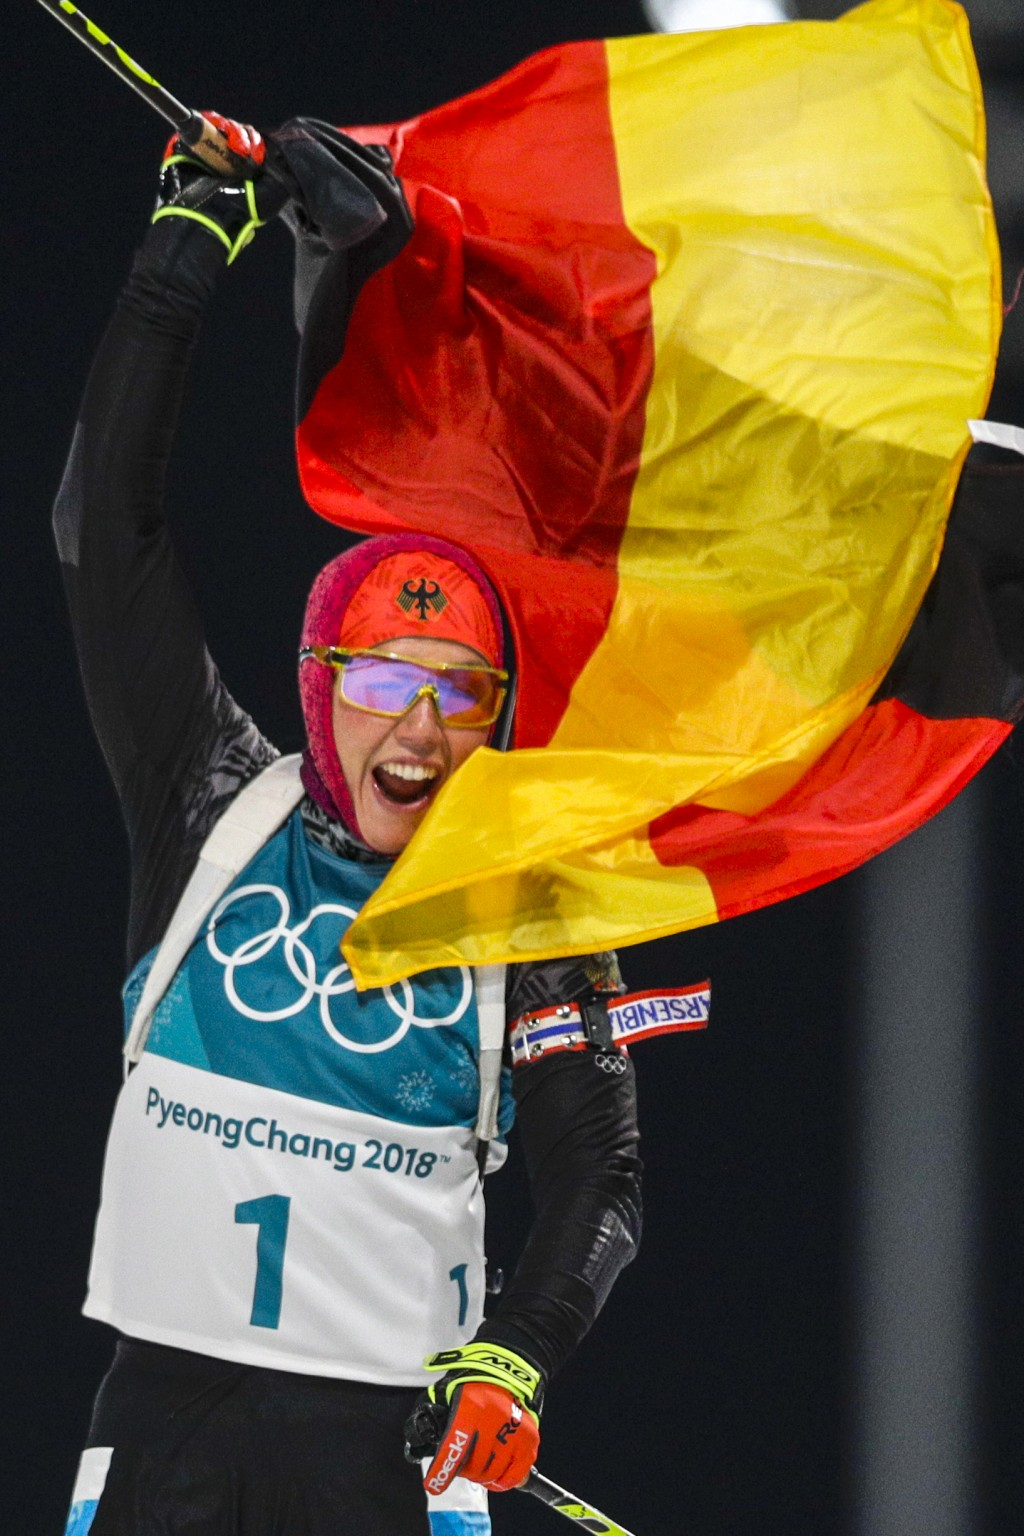 Laura Dahlmeier, of Germany, waves the German flag as she wins the gold medal in the women's 10-kilometer biathlon pursuit at the 2018 Winter Olympics